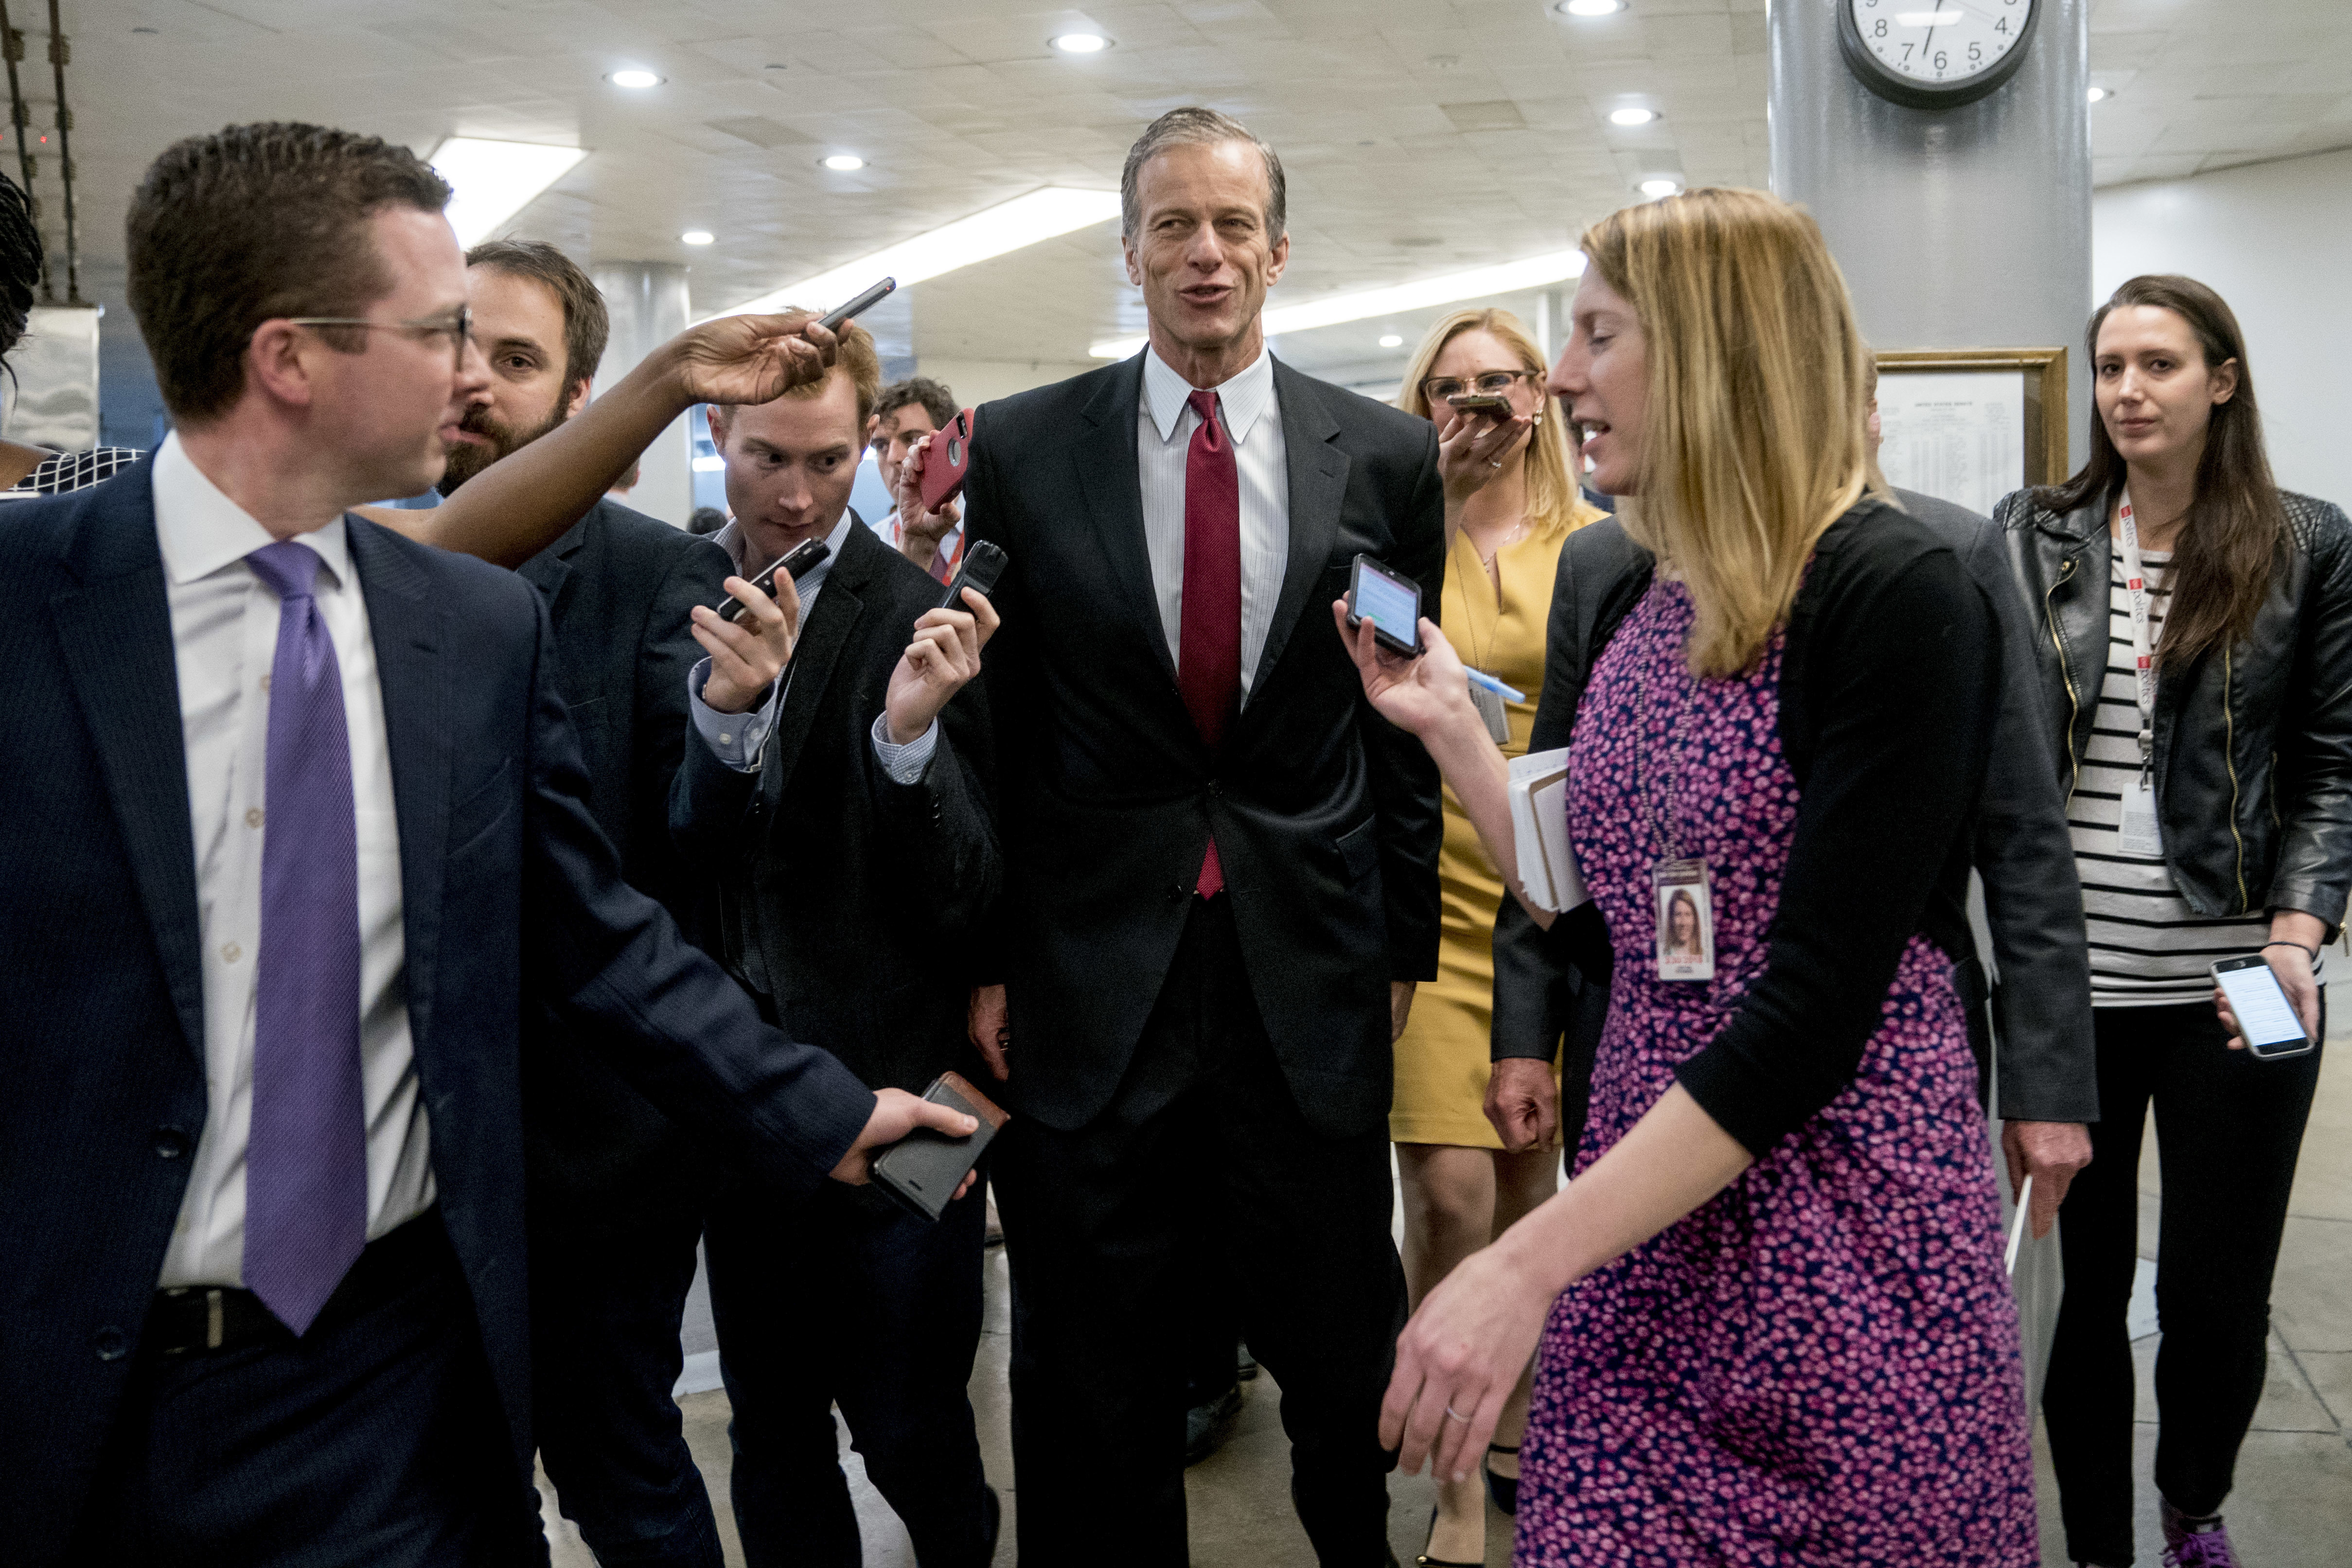 Sen. John Thune, R-S.D., speaks to reporters as he walks toward the Senate as Congress moves closer to the funding deadline to avoid a government shutdown on Capitol Hill in Washington, Jan. 18, 2018.